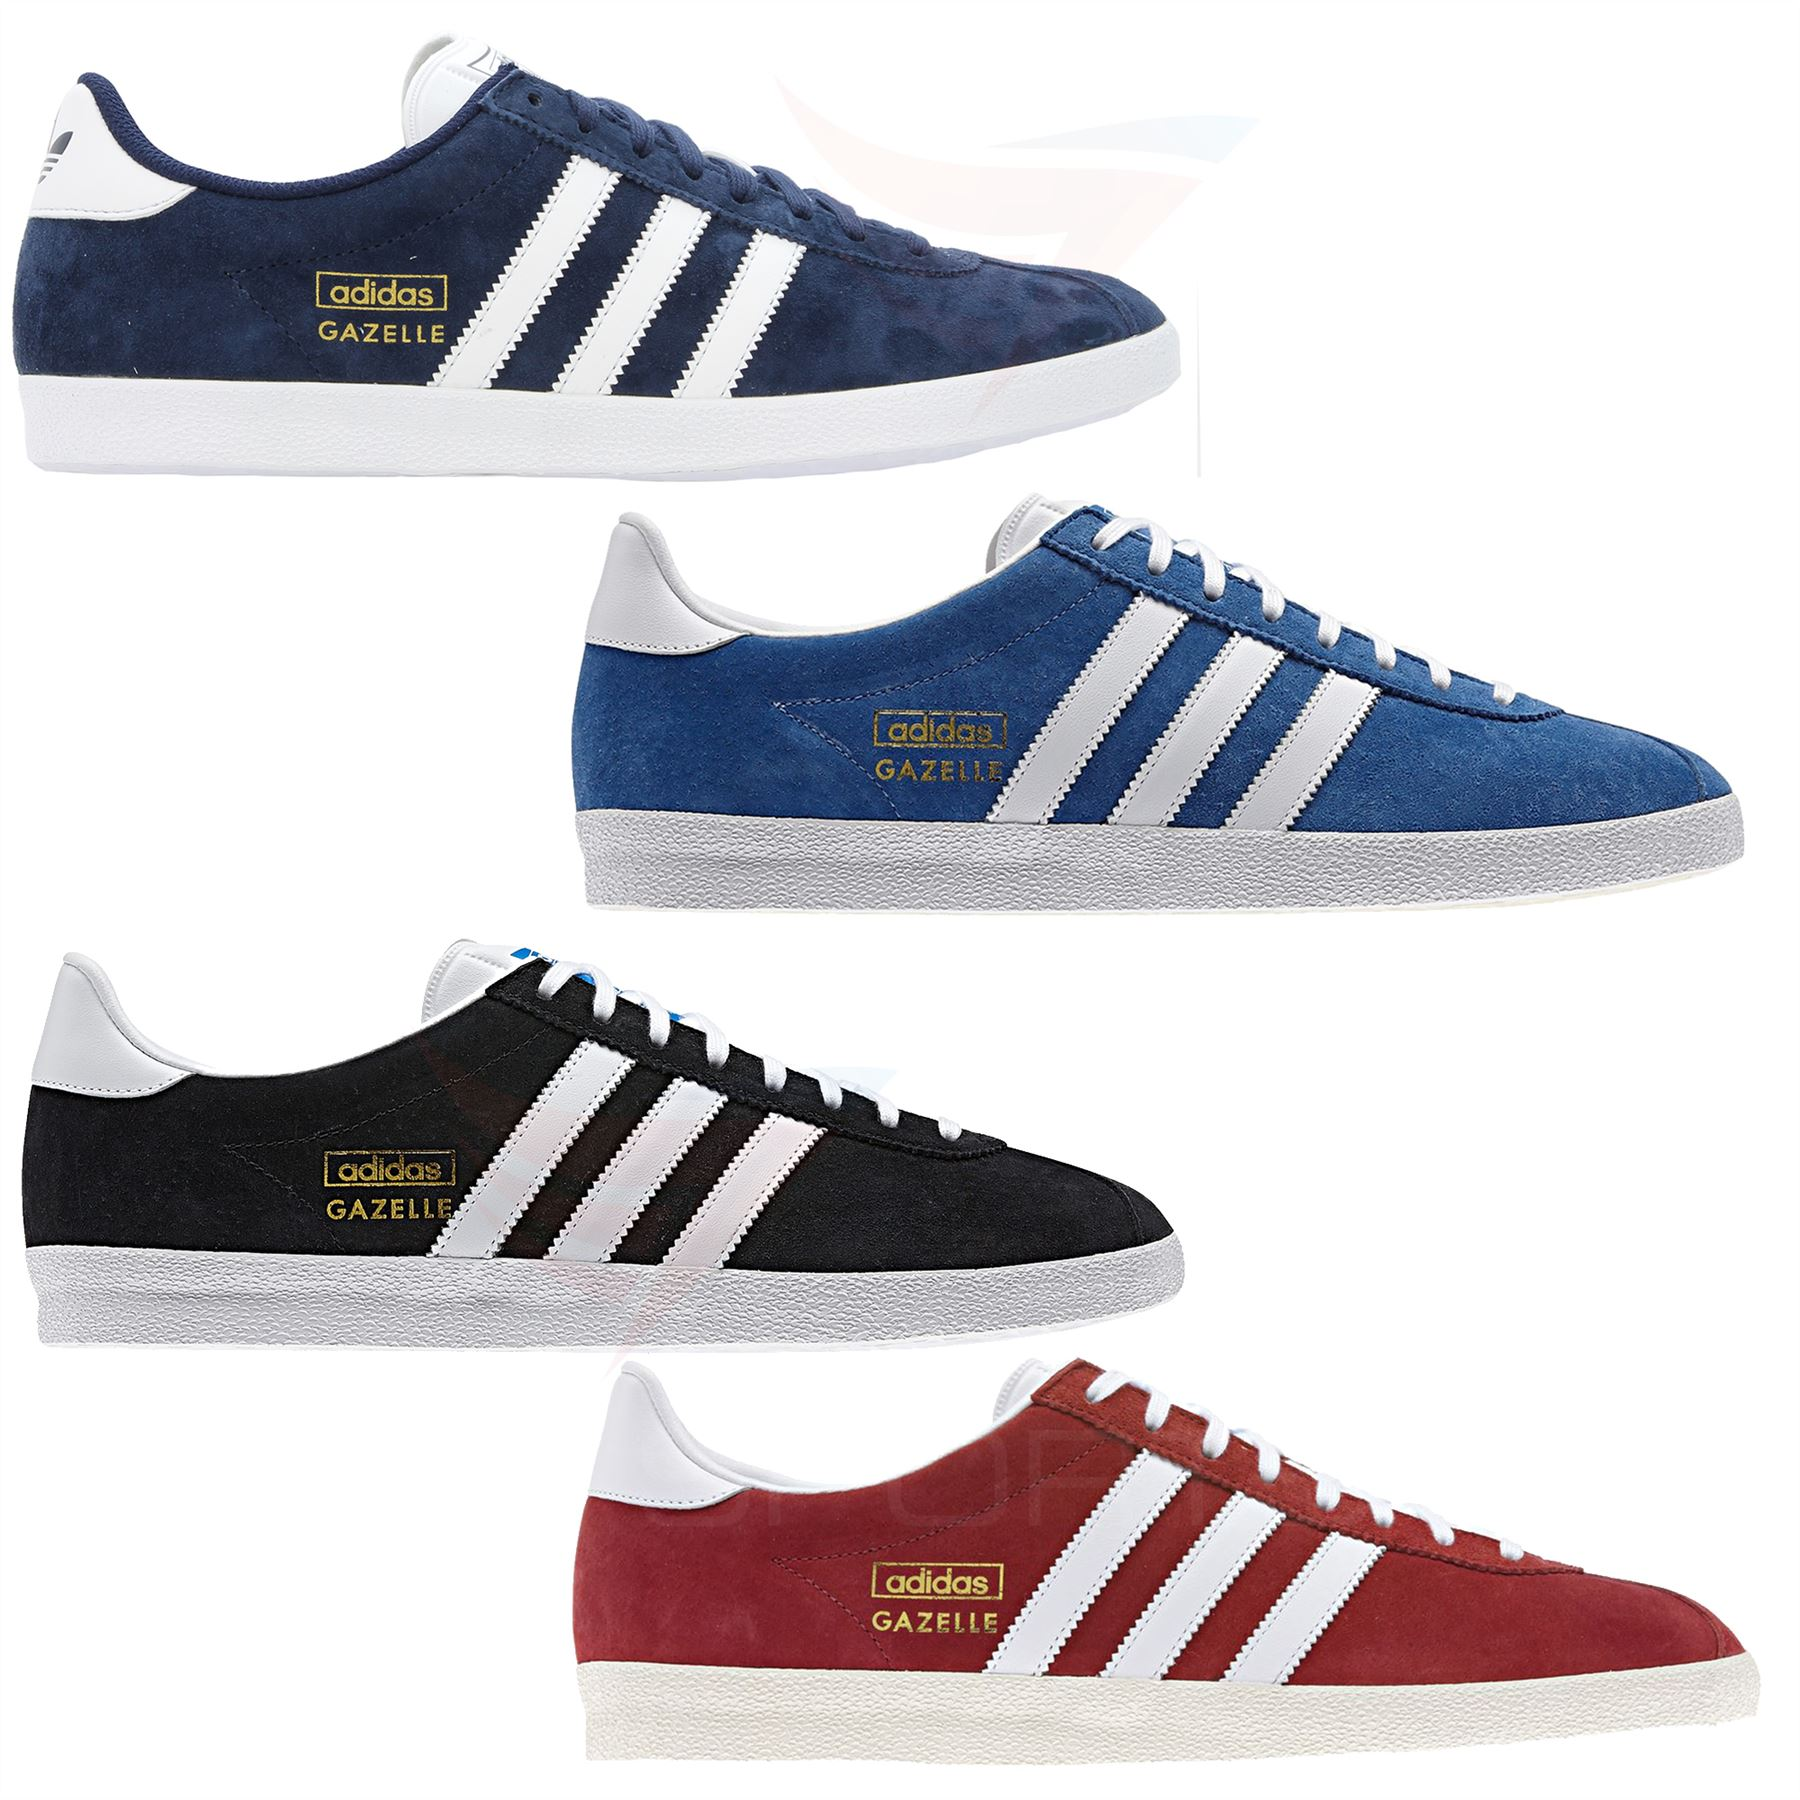 low priced 4eb5f 8fcb5 adidas GAZELLE OG TRAINERS SNEAKERS ORIGINALS SUEDE RED BLUE BLACK NAVY  GOLD MEN